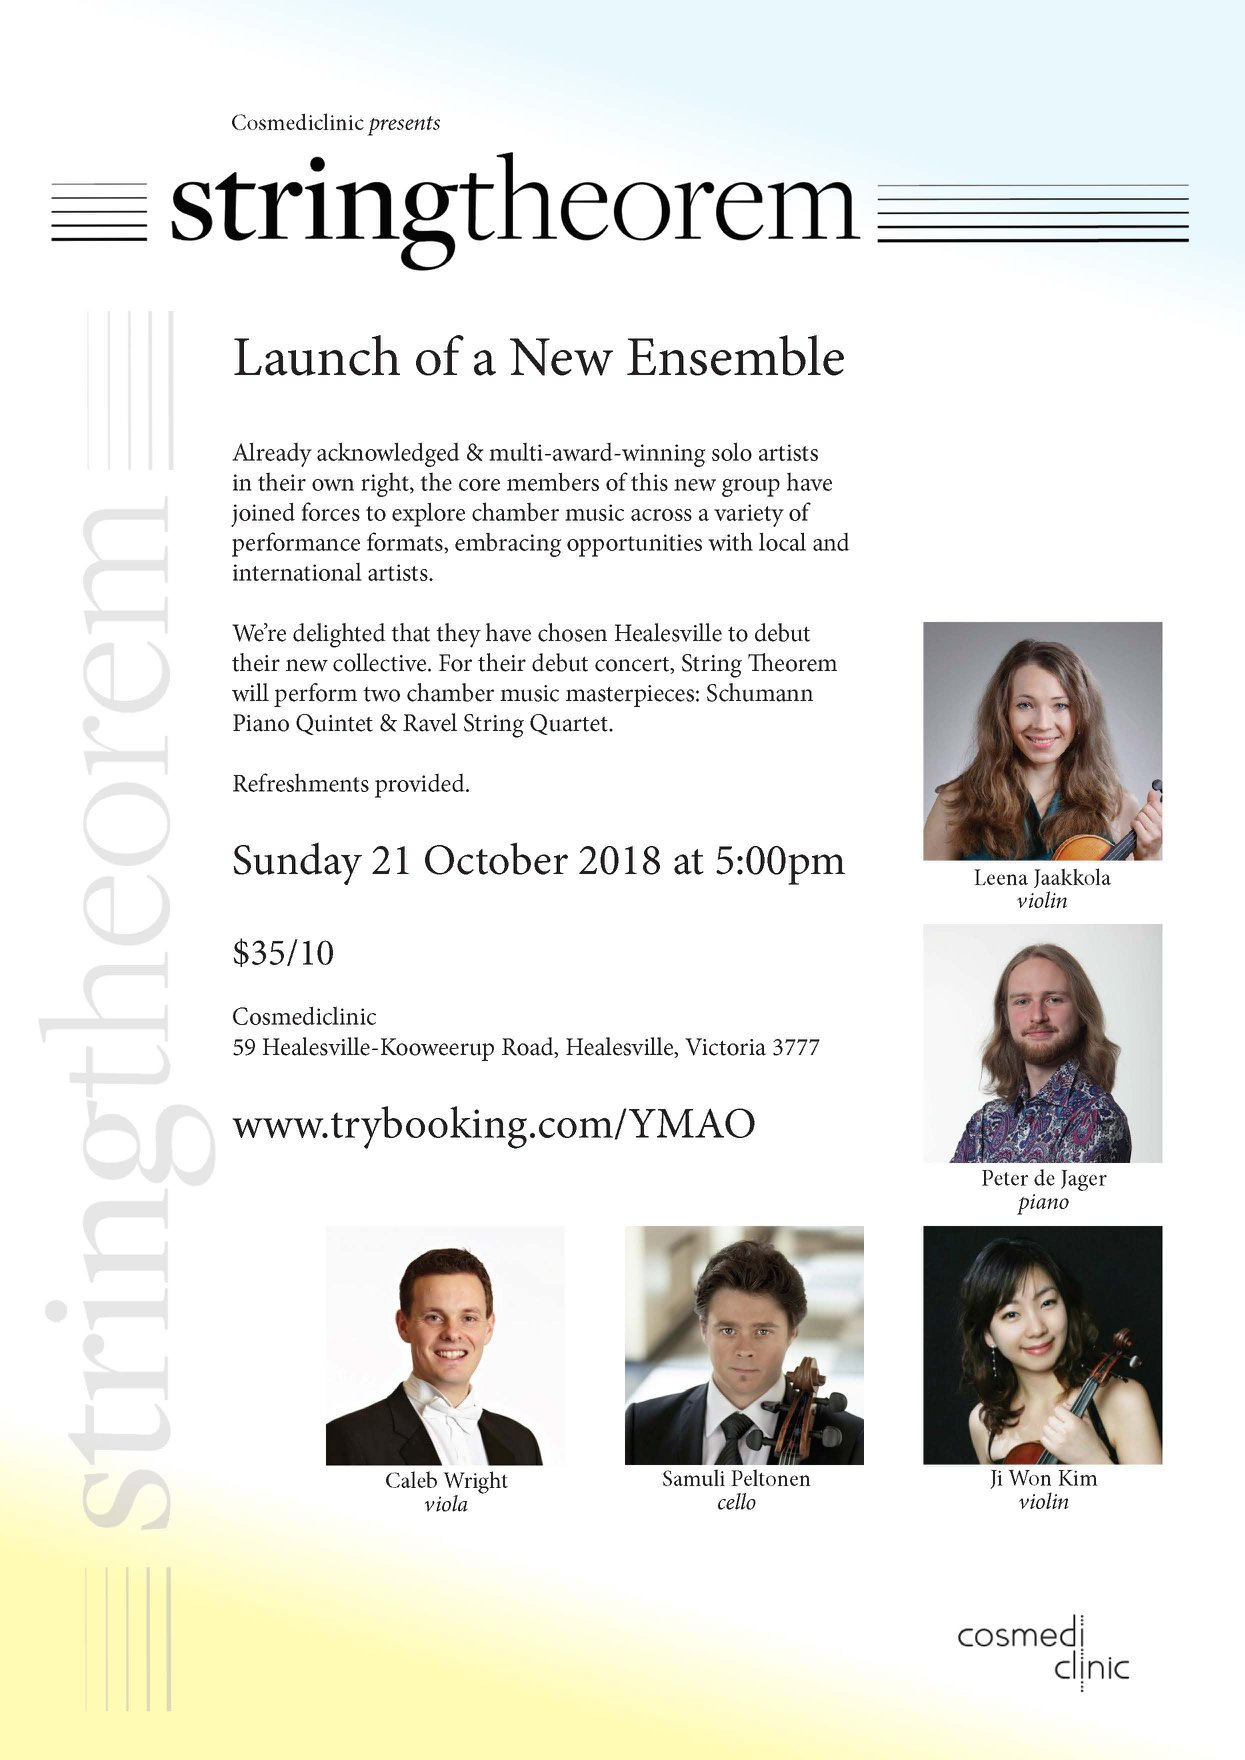 21.10. String Theorem: Launch of a New Ensemble